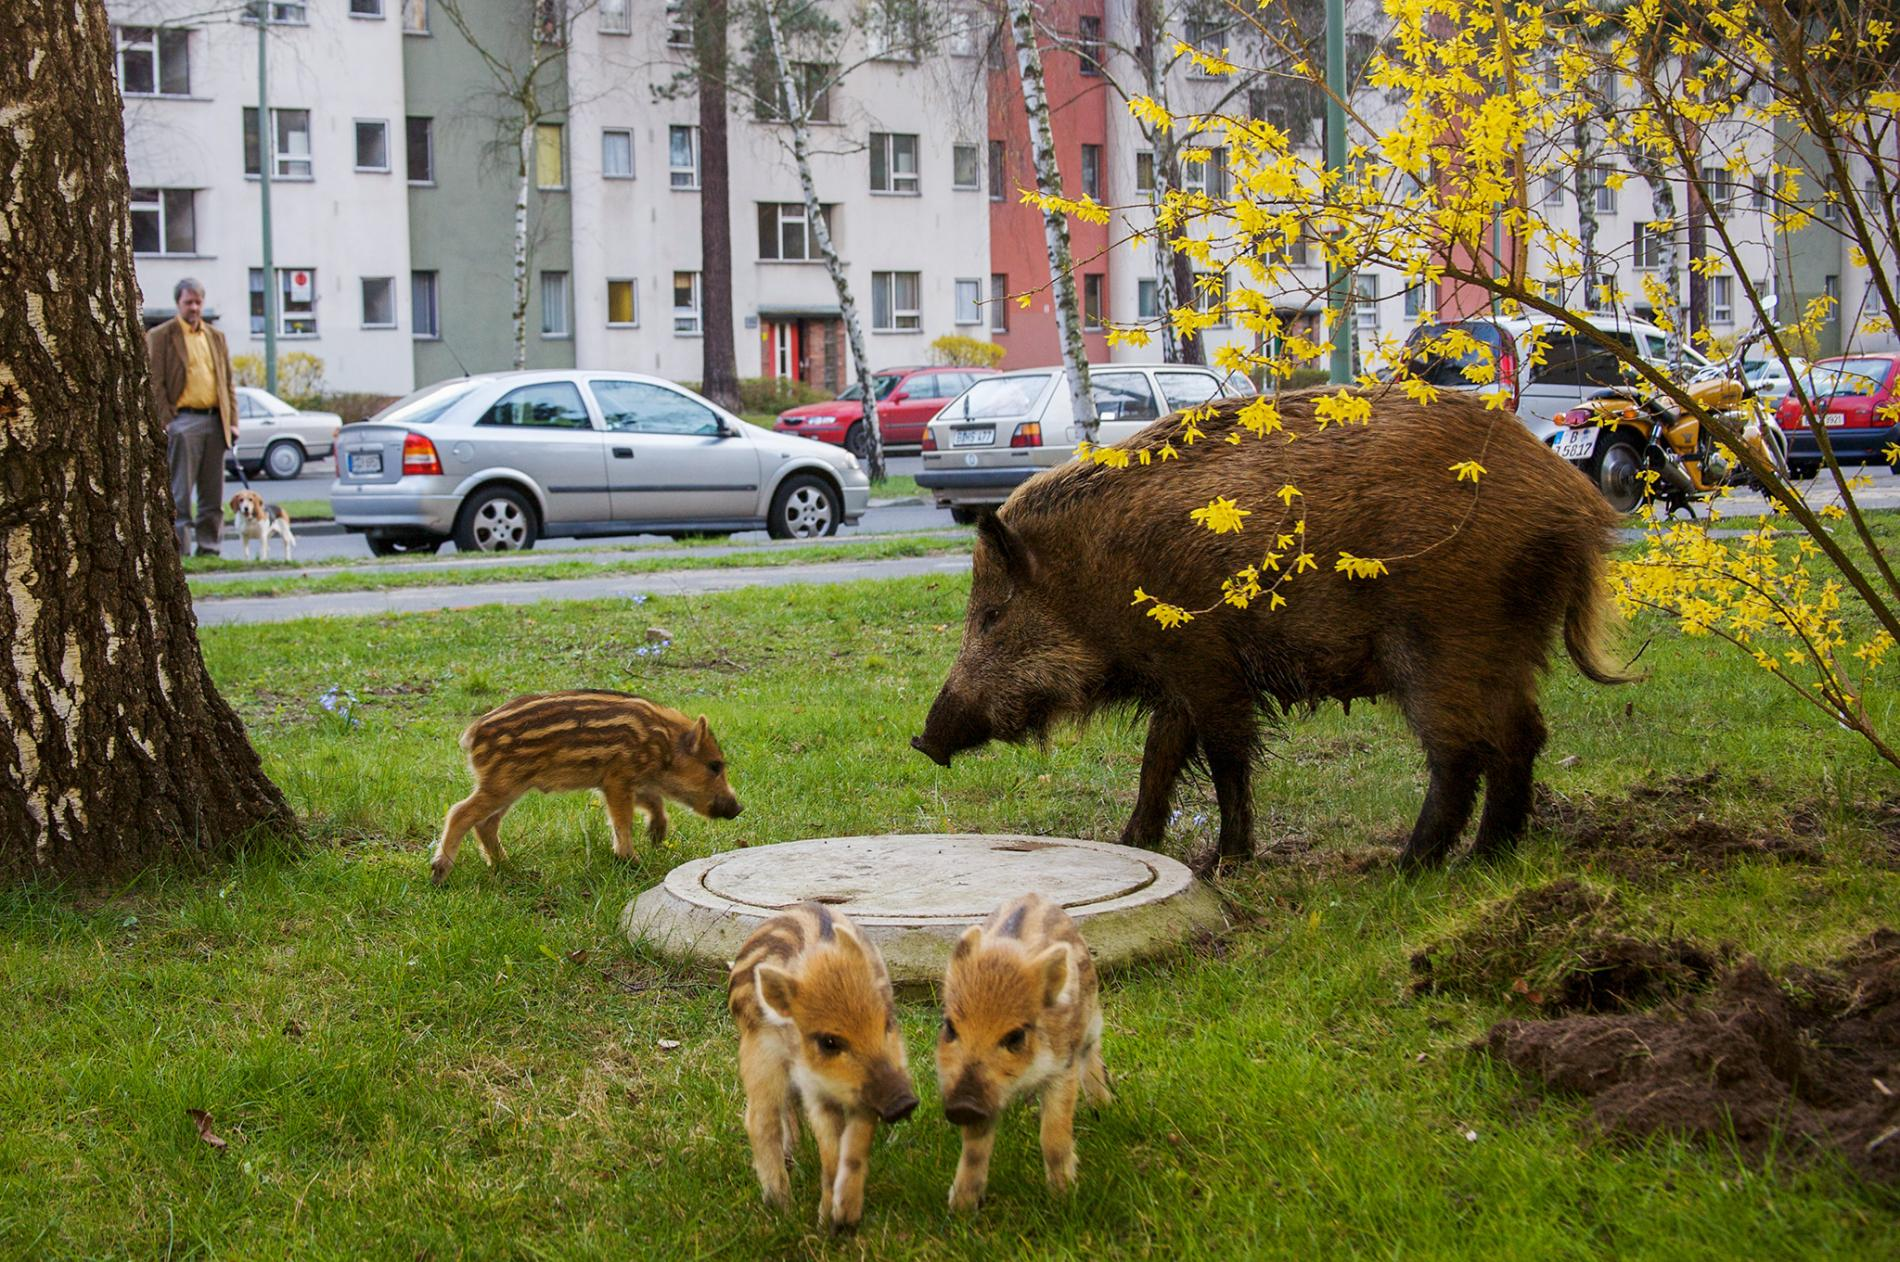 Pigs in the city